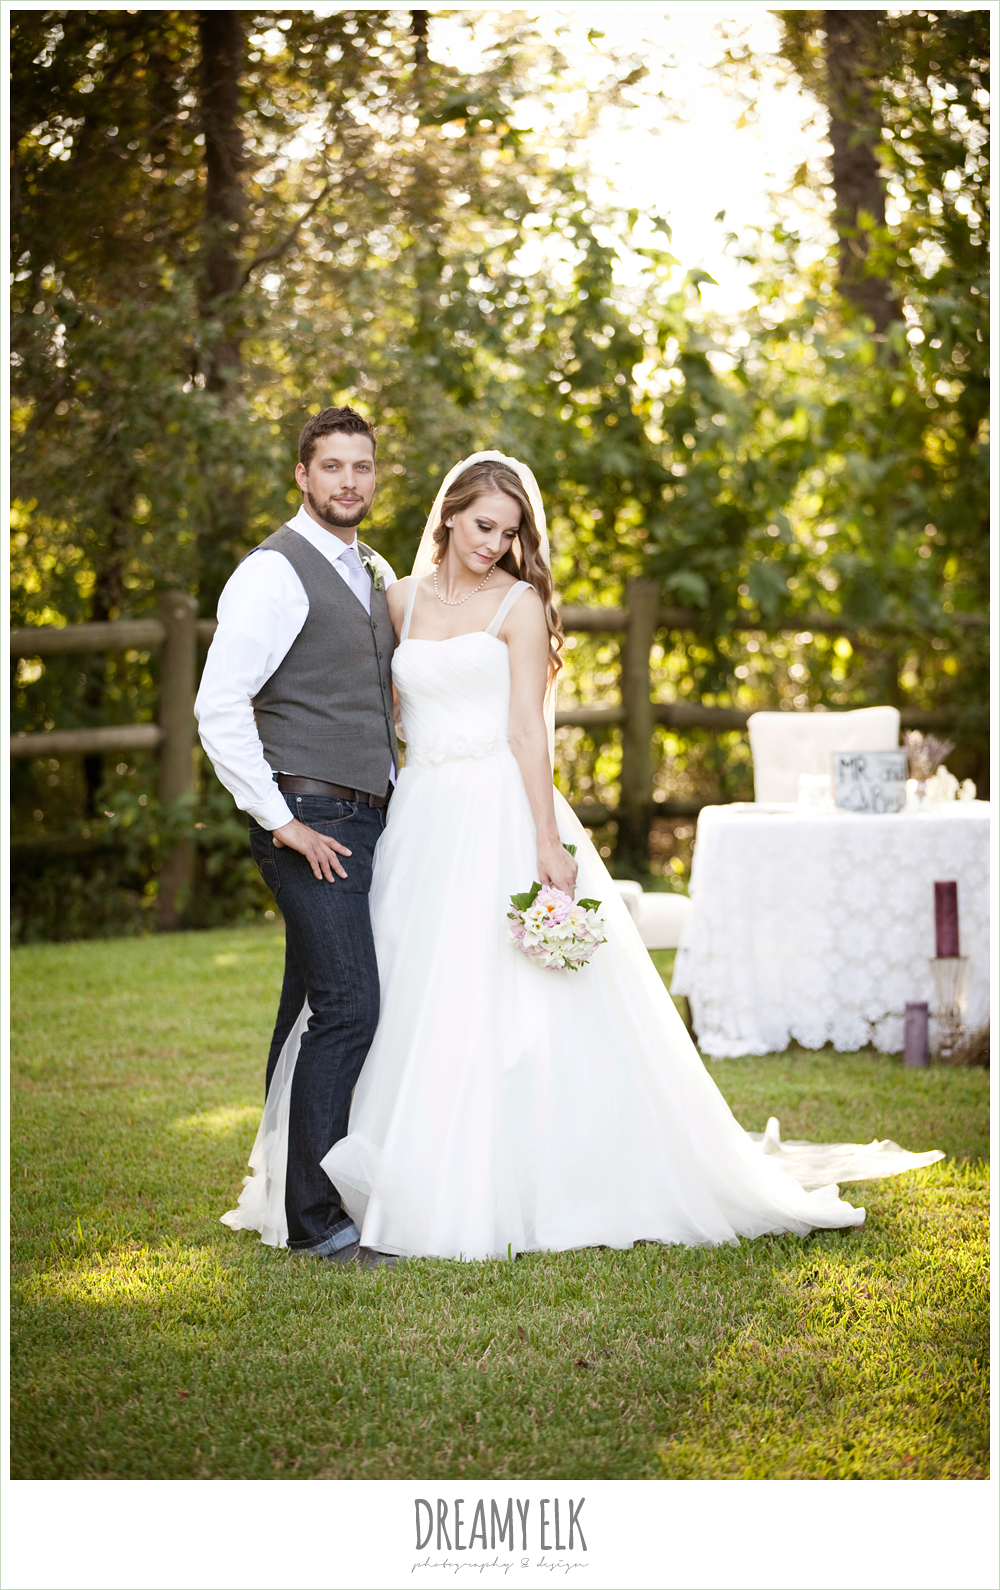 spaghetti strap tulle wedding dress, groom in vest and jeans, rustic chic post wedding shoot, dreamy elk photography and design